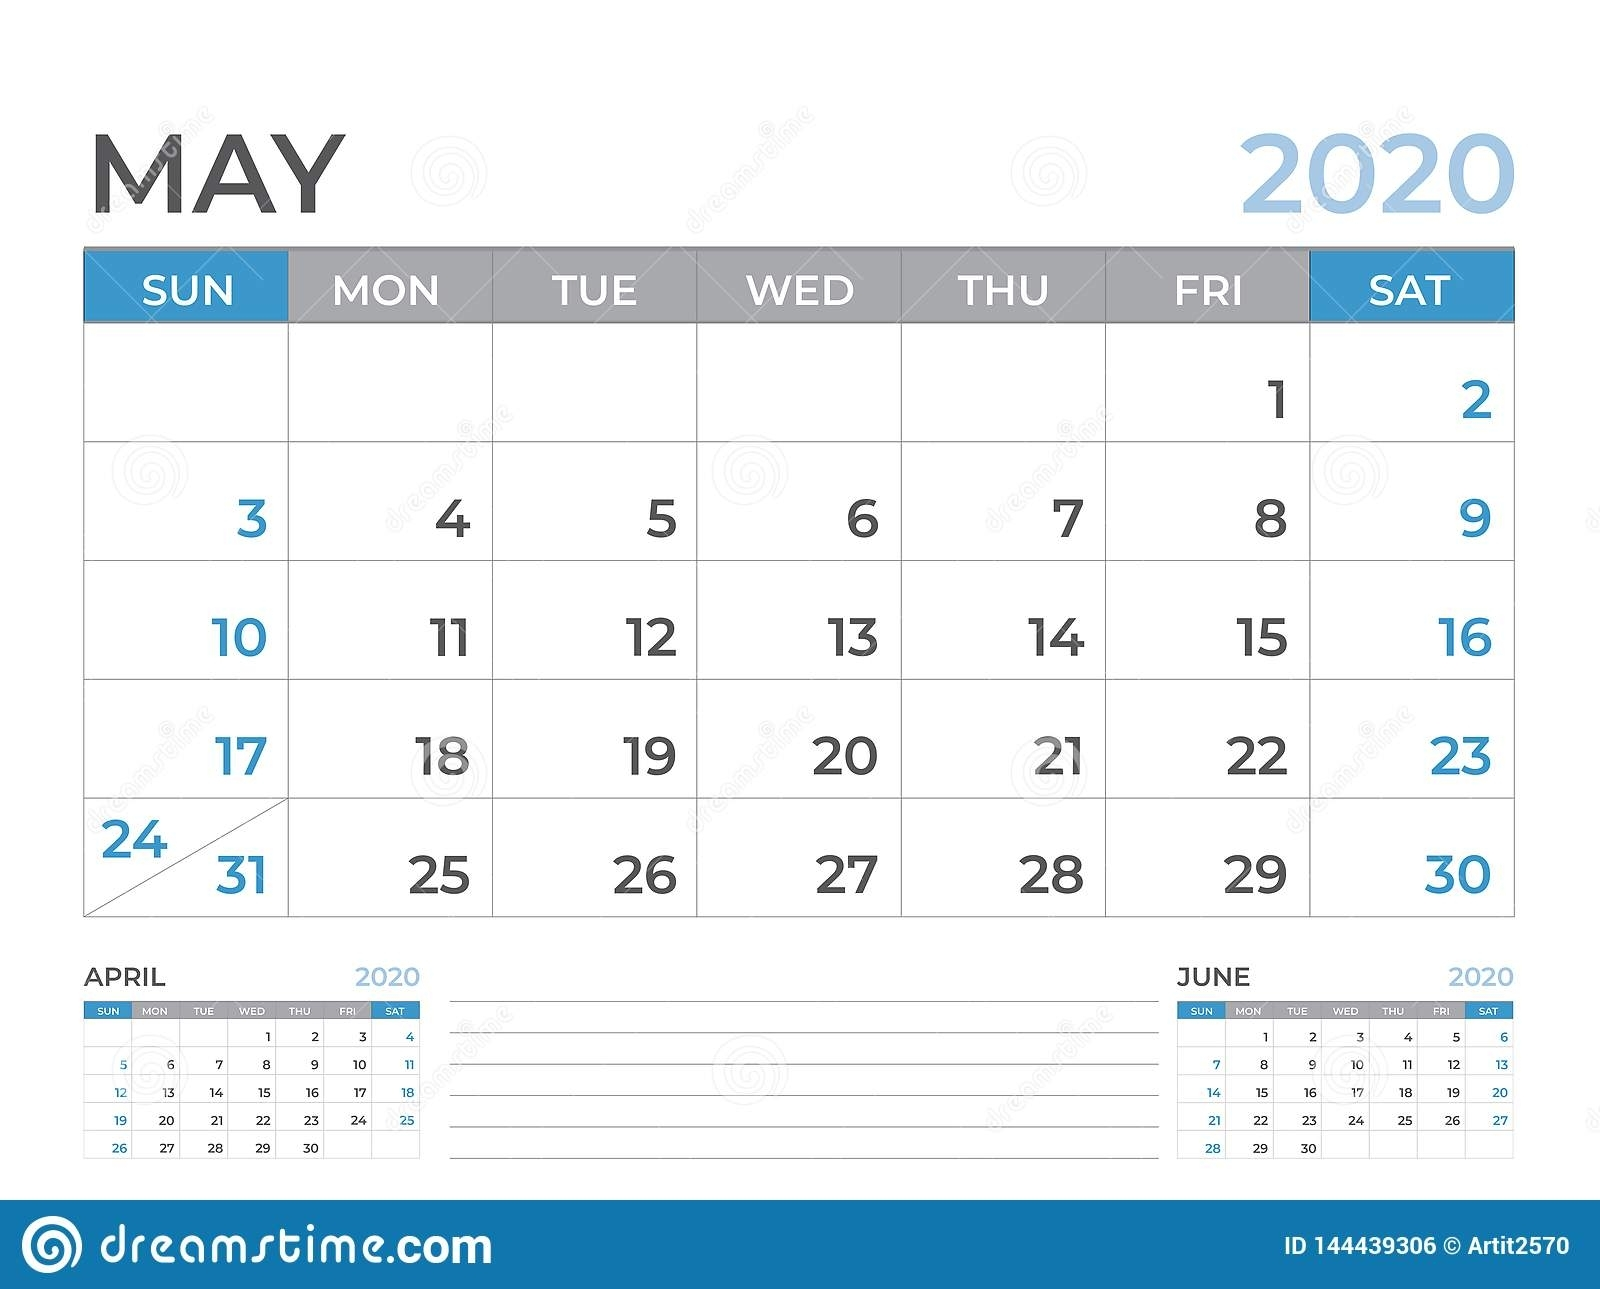 May 2020 Calendar Template, Desk Calendar Layout Size 8 X 6 Inch for 10 X 8 Planner Template